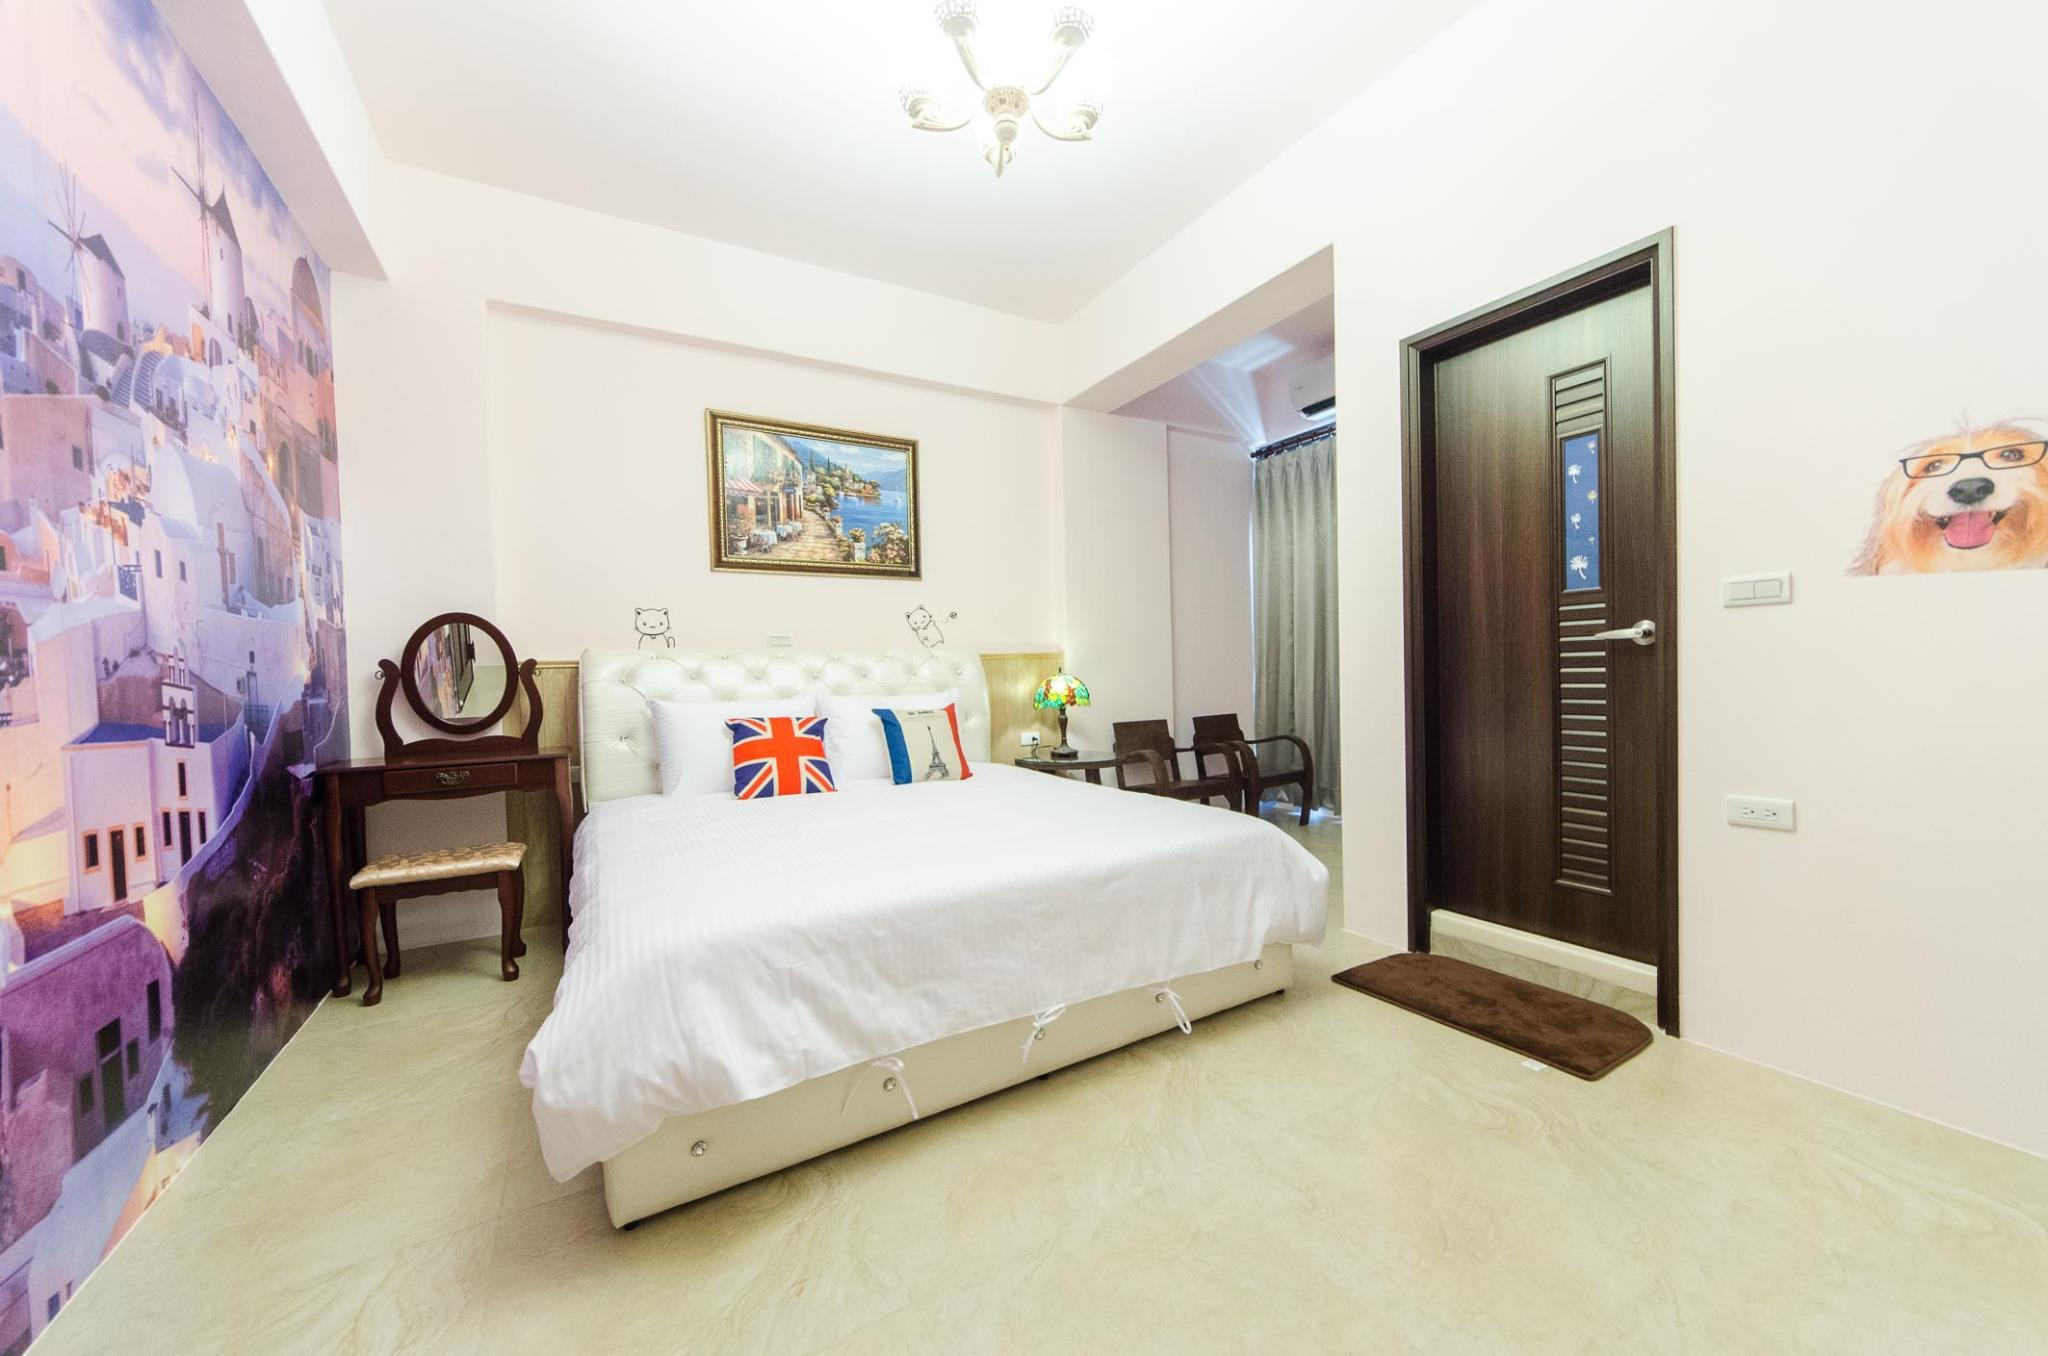 Near Hualien Commercial High School   Doule Room With Balcony